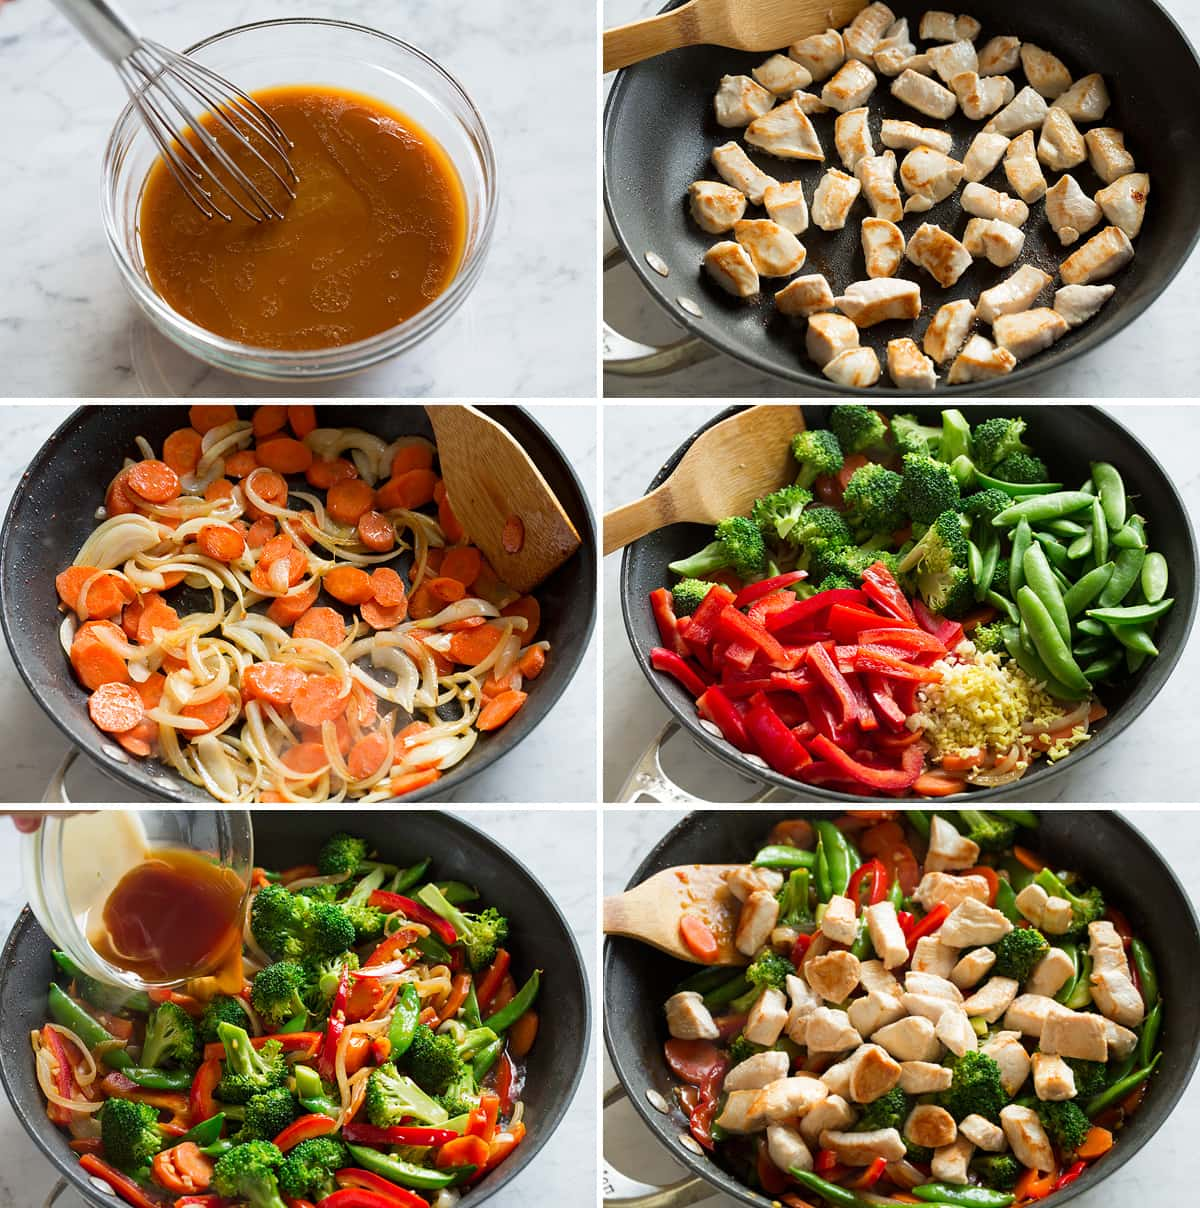 Steps showing how to make stir fry sauce and stir fry in a skillet.